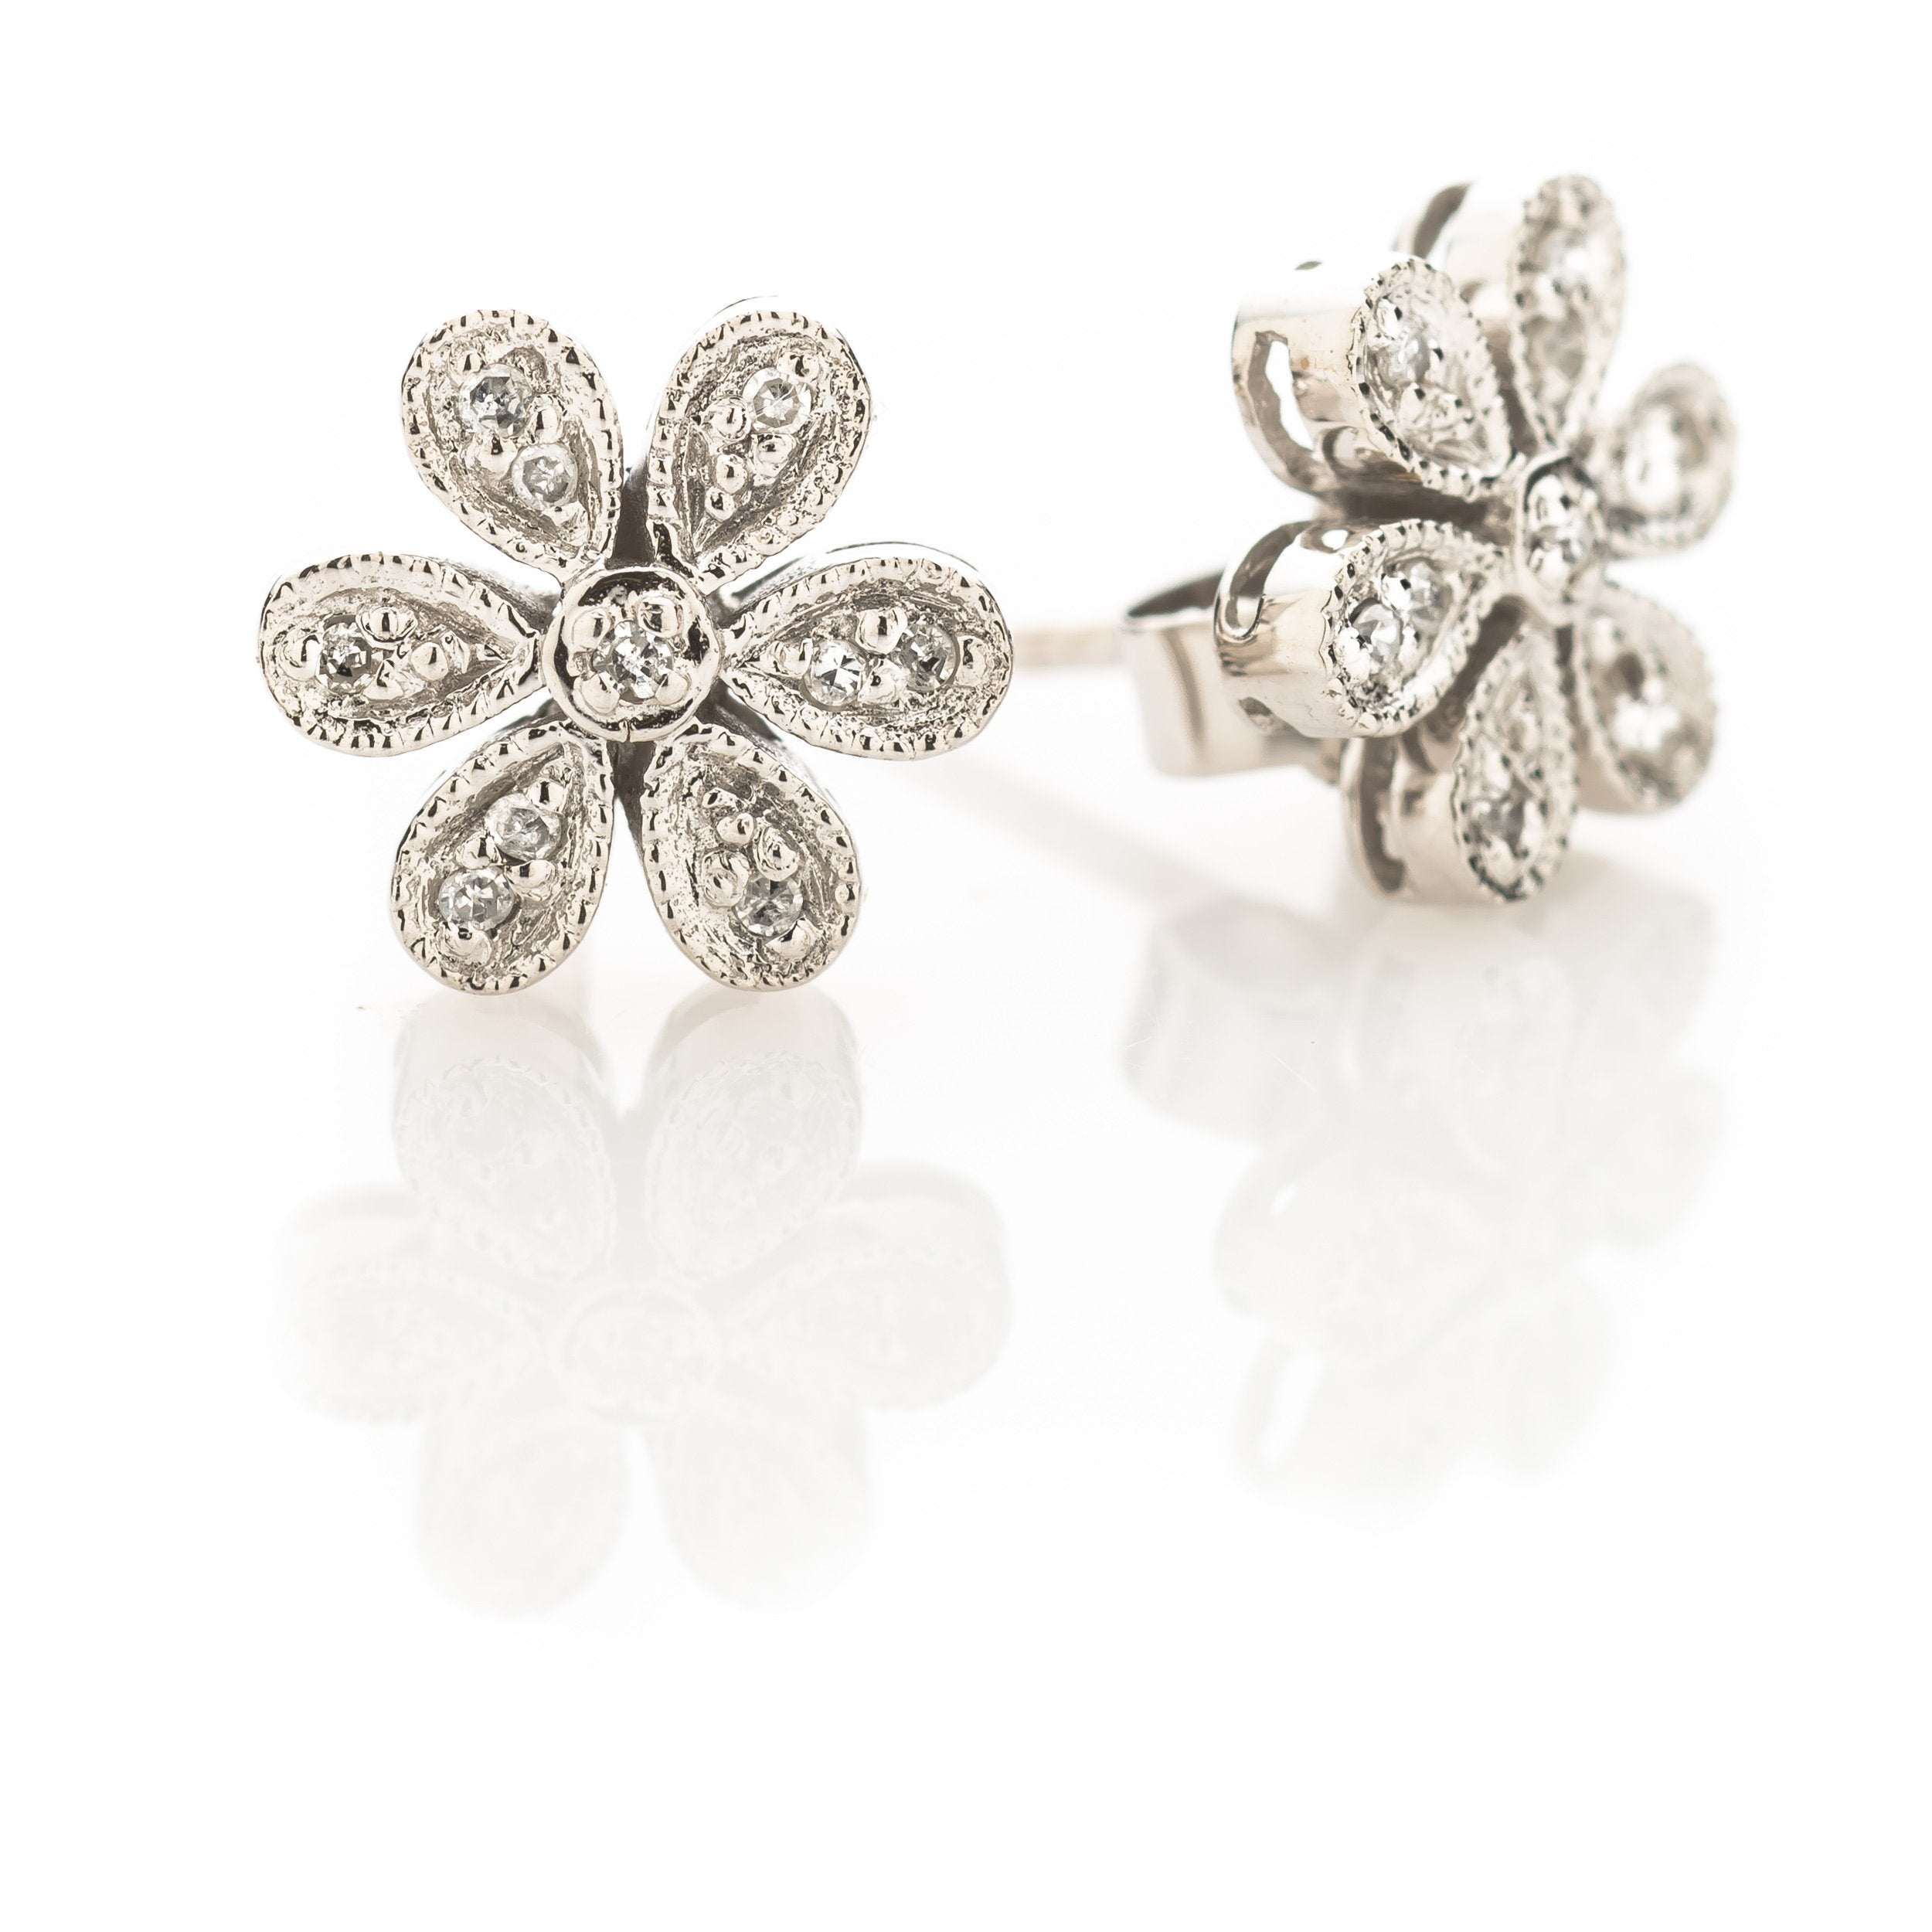 Daisy Diamond Duke Earrings - Alef Bet Jewelry by Paula